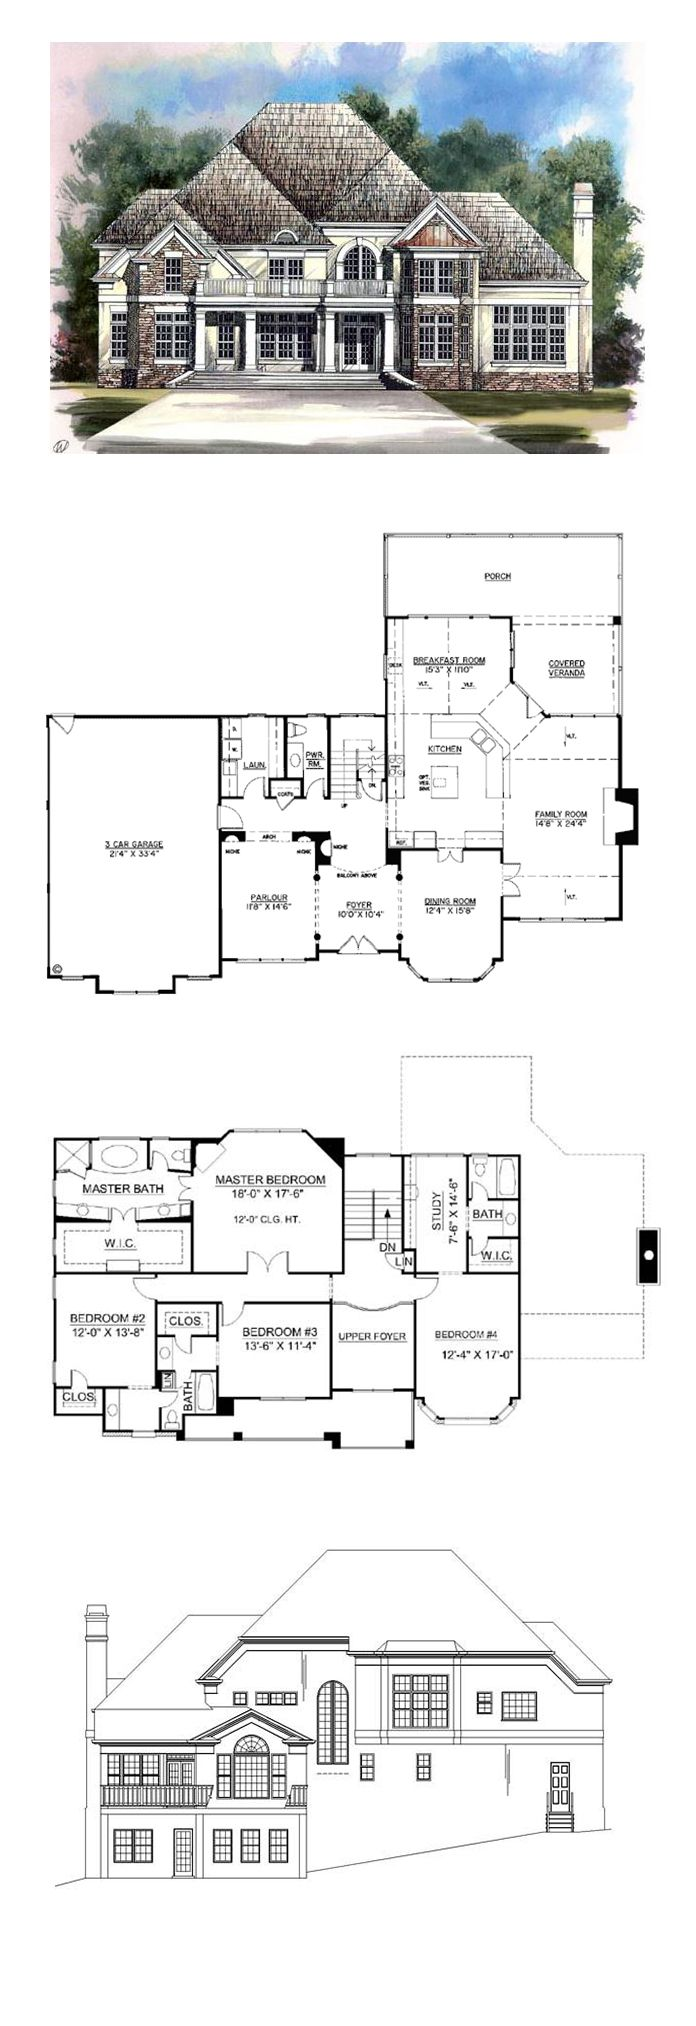 49 best images about greek revival house plans on pinterest for Greek revival floor plans